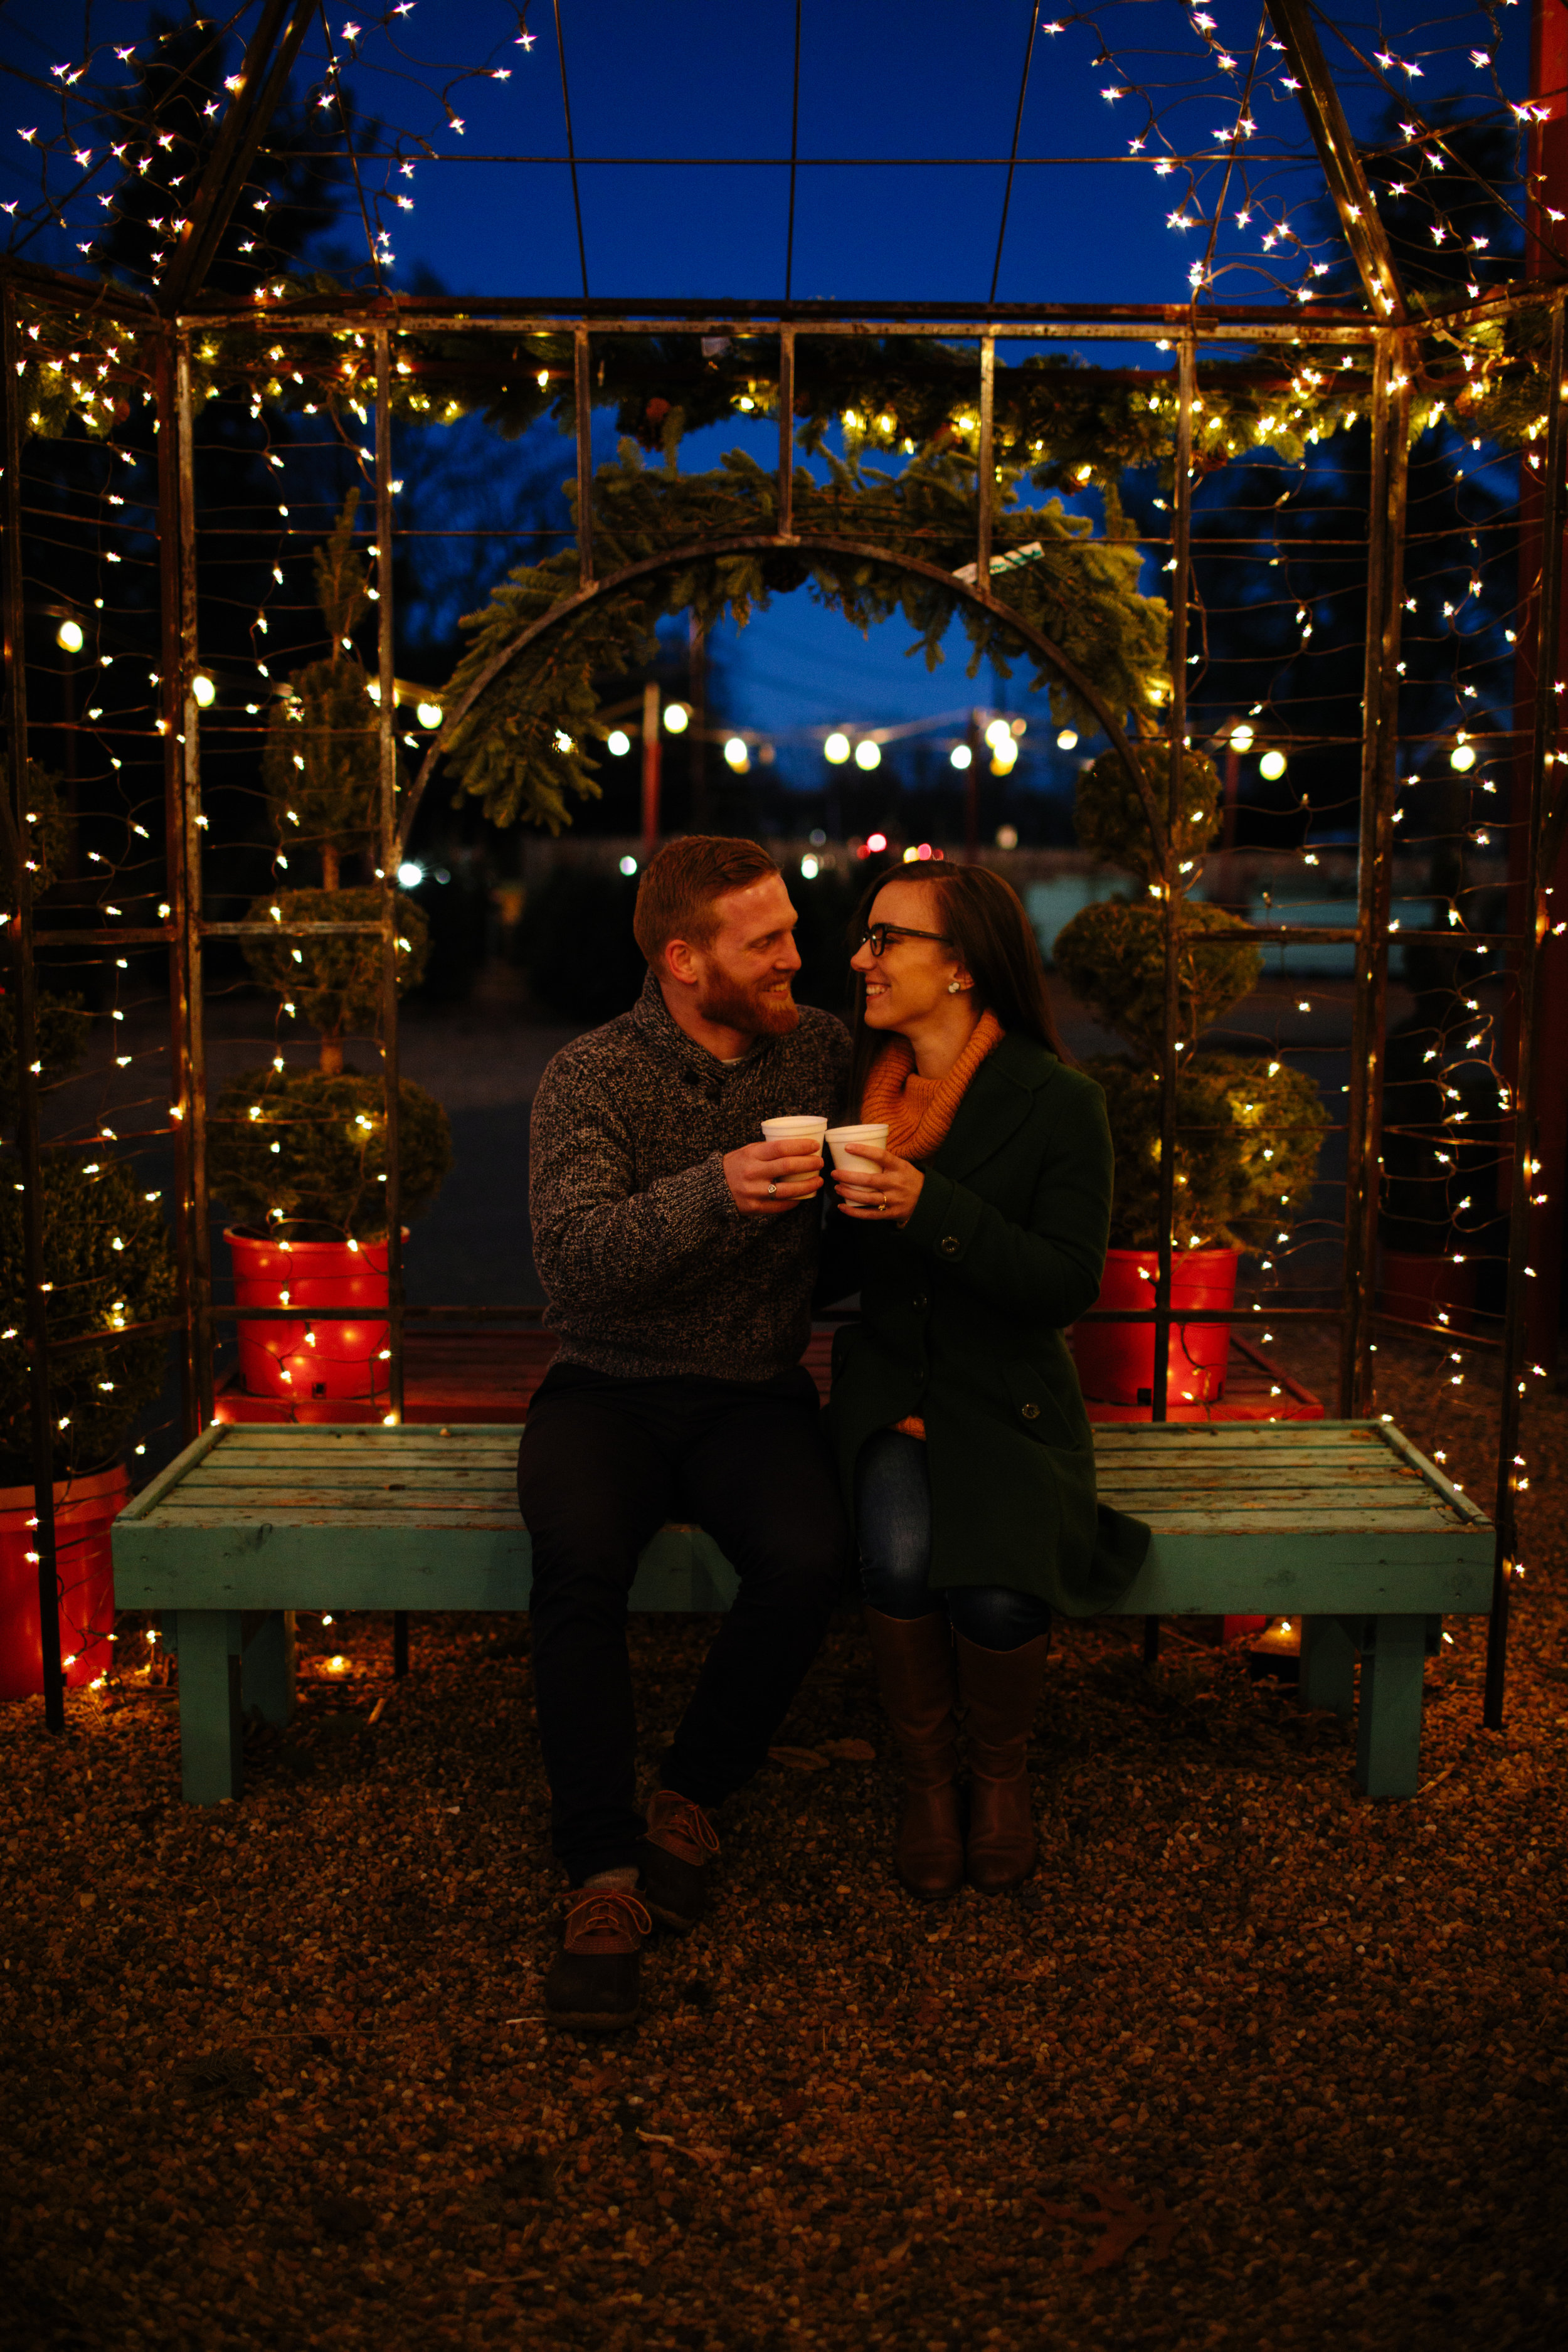 emily+james-christmastreefarm-30.jpg